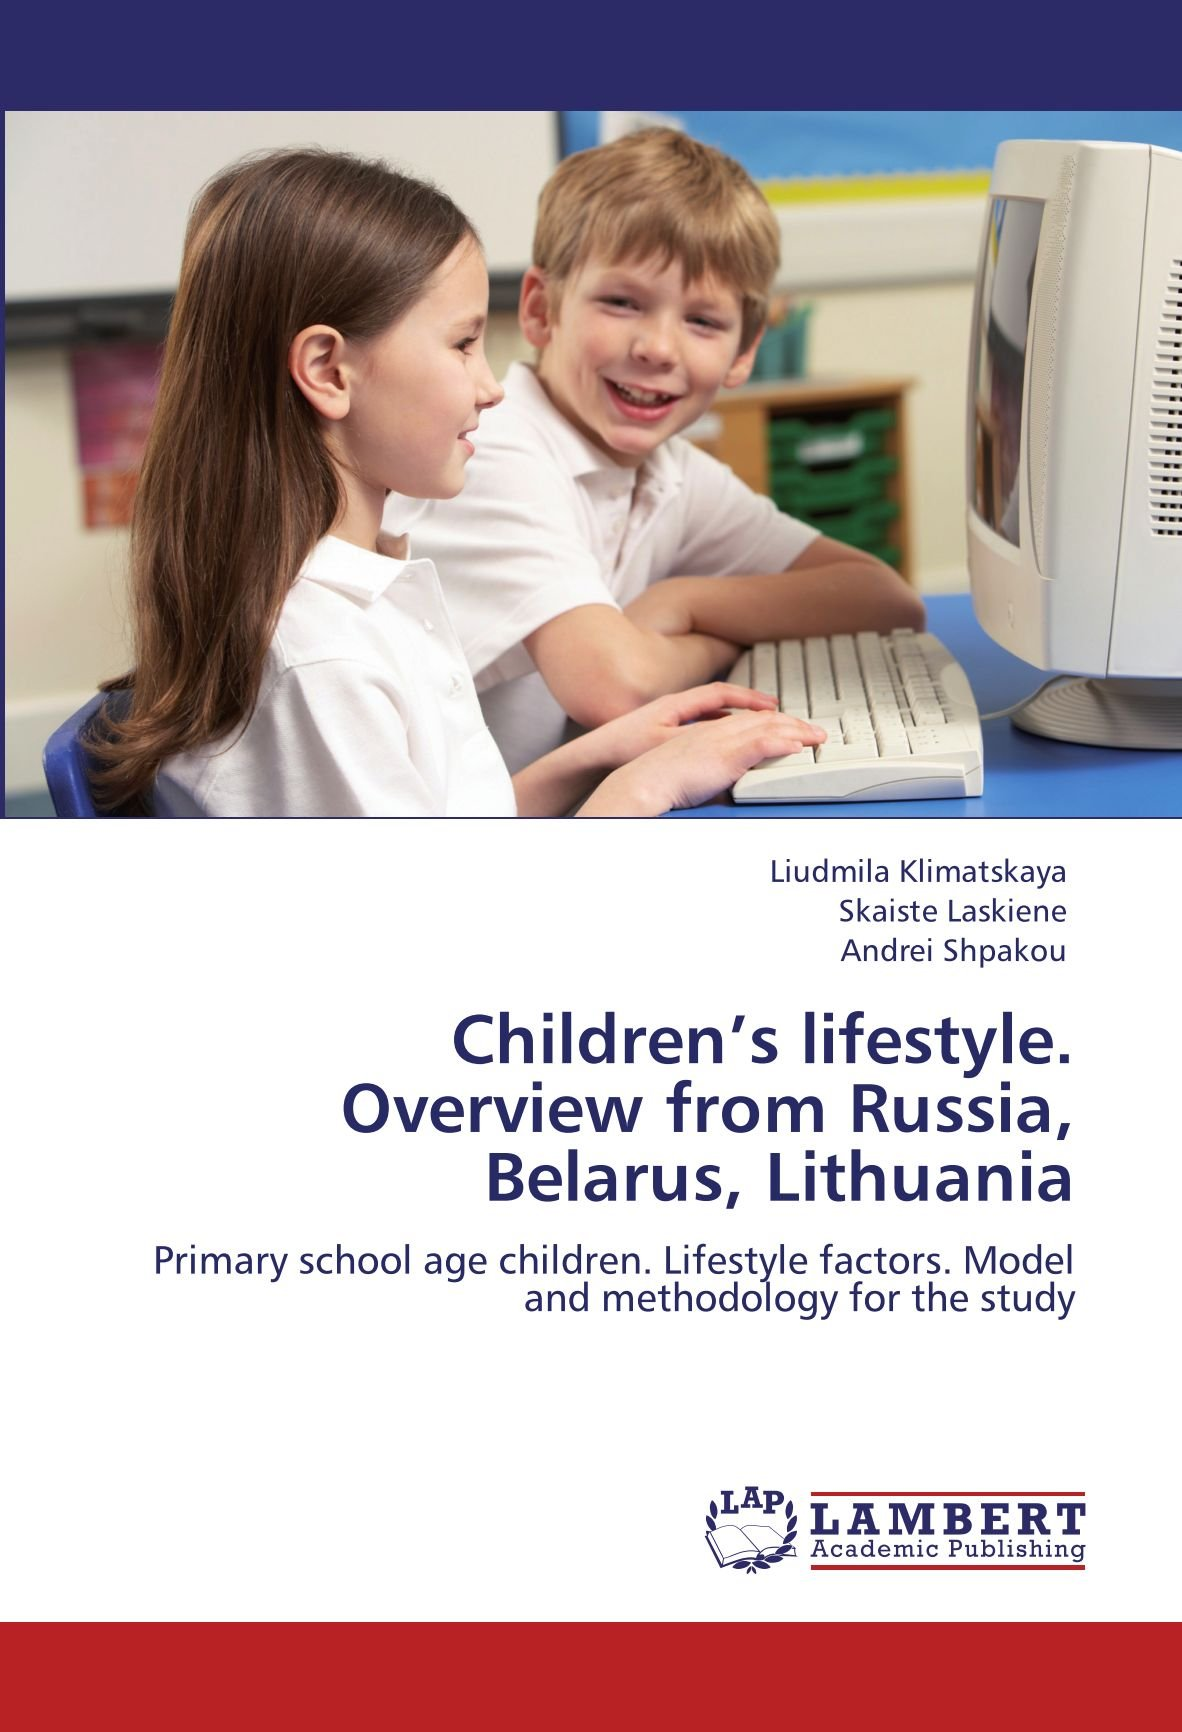 Children's lifestyle. Overview from Russia, Belarus, Lithuania: Primary school age children. Lifestyle factors. Model and methodology for the study PDF